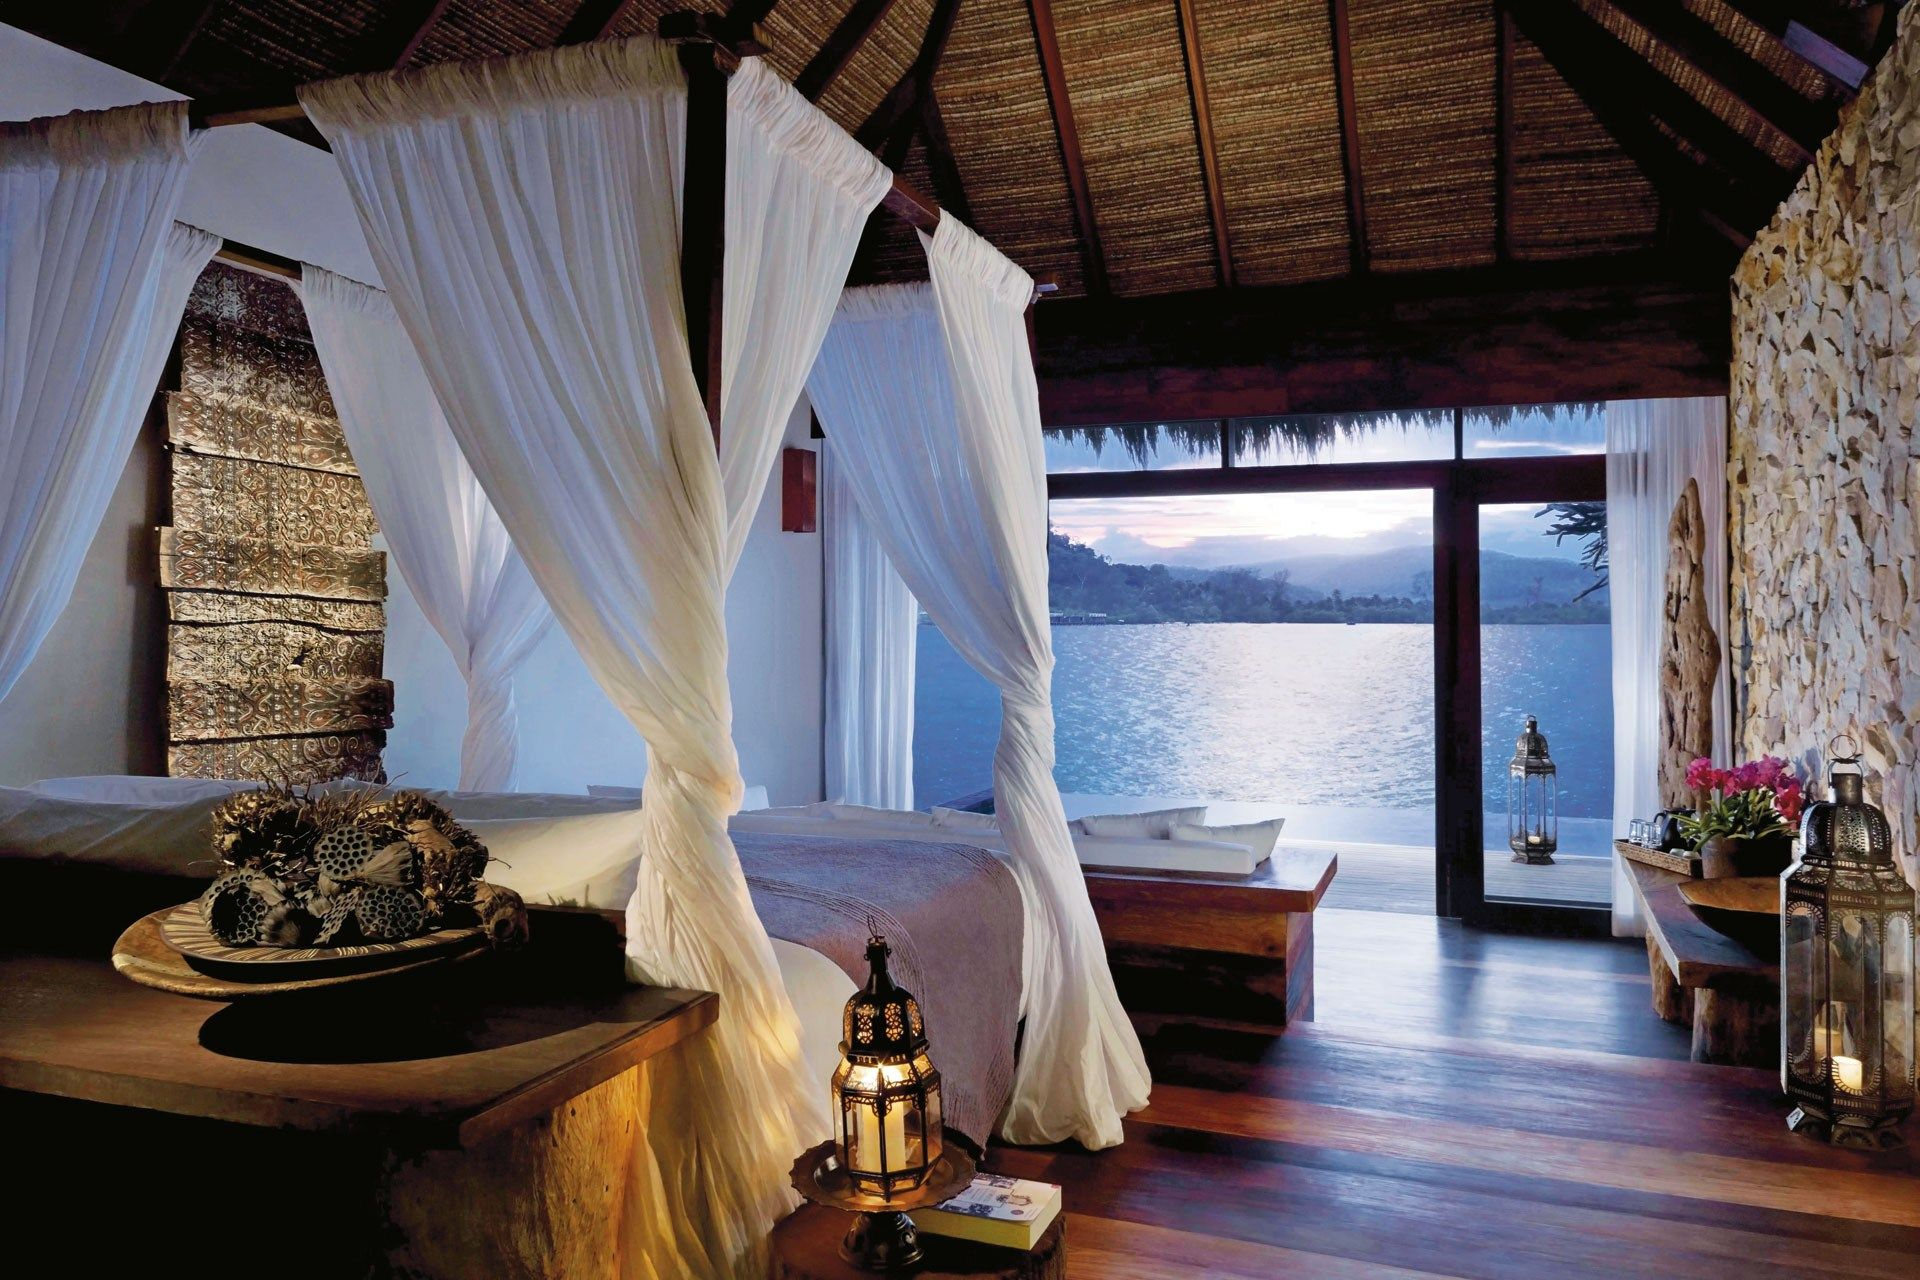 See Our Gallery Of Some The Best Hotel Rooms In World